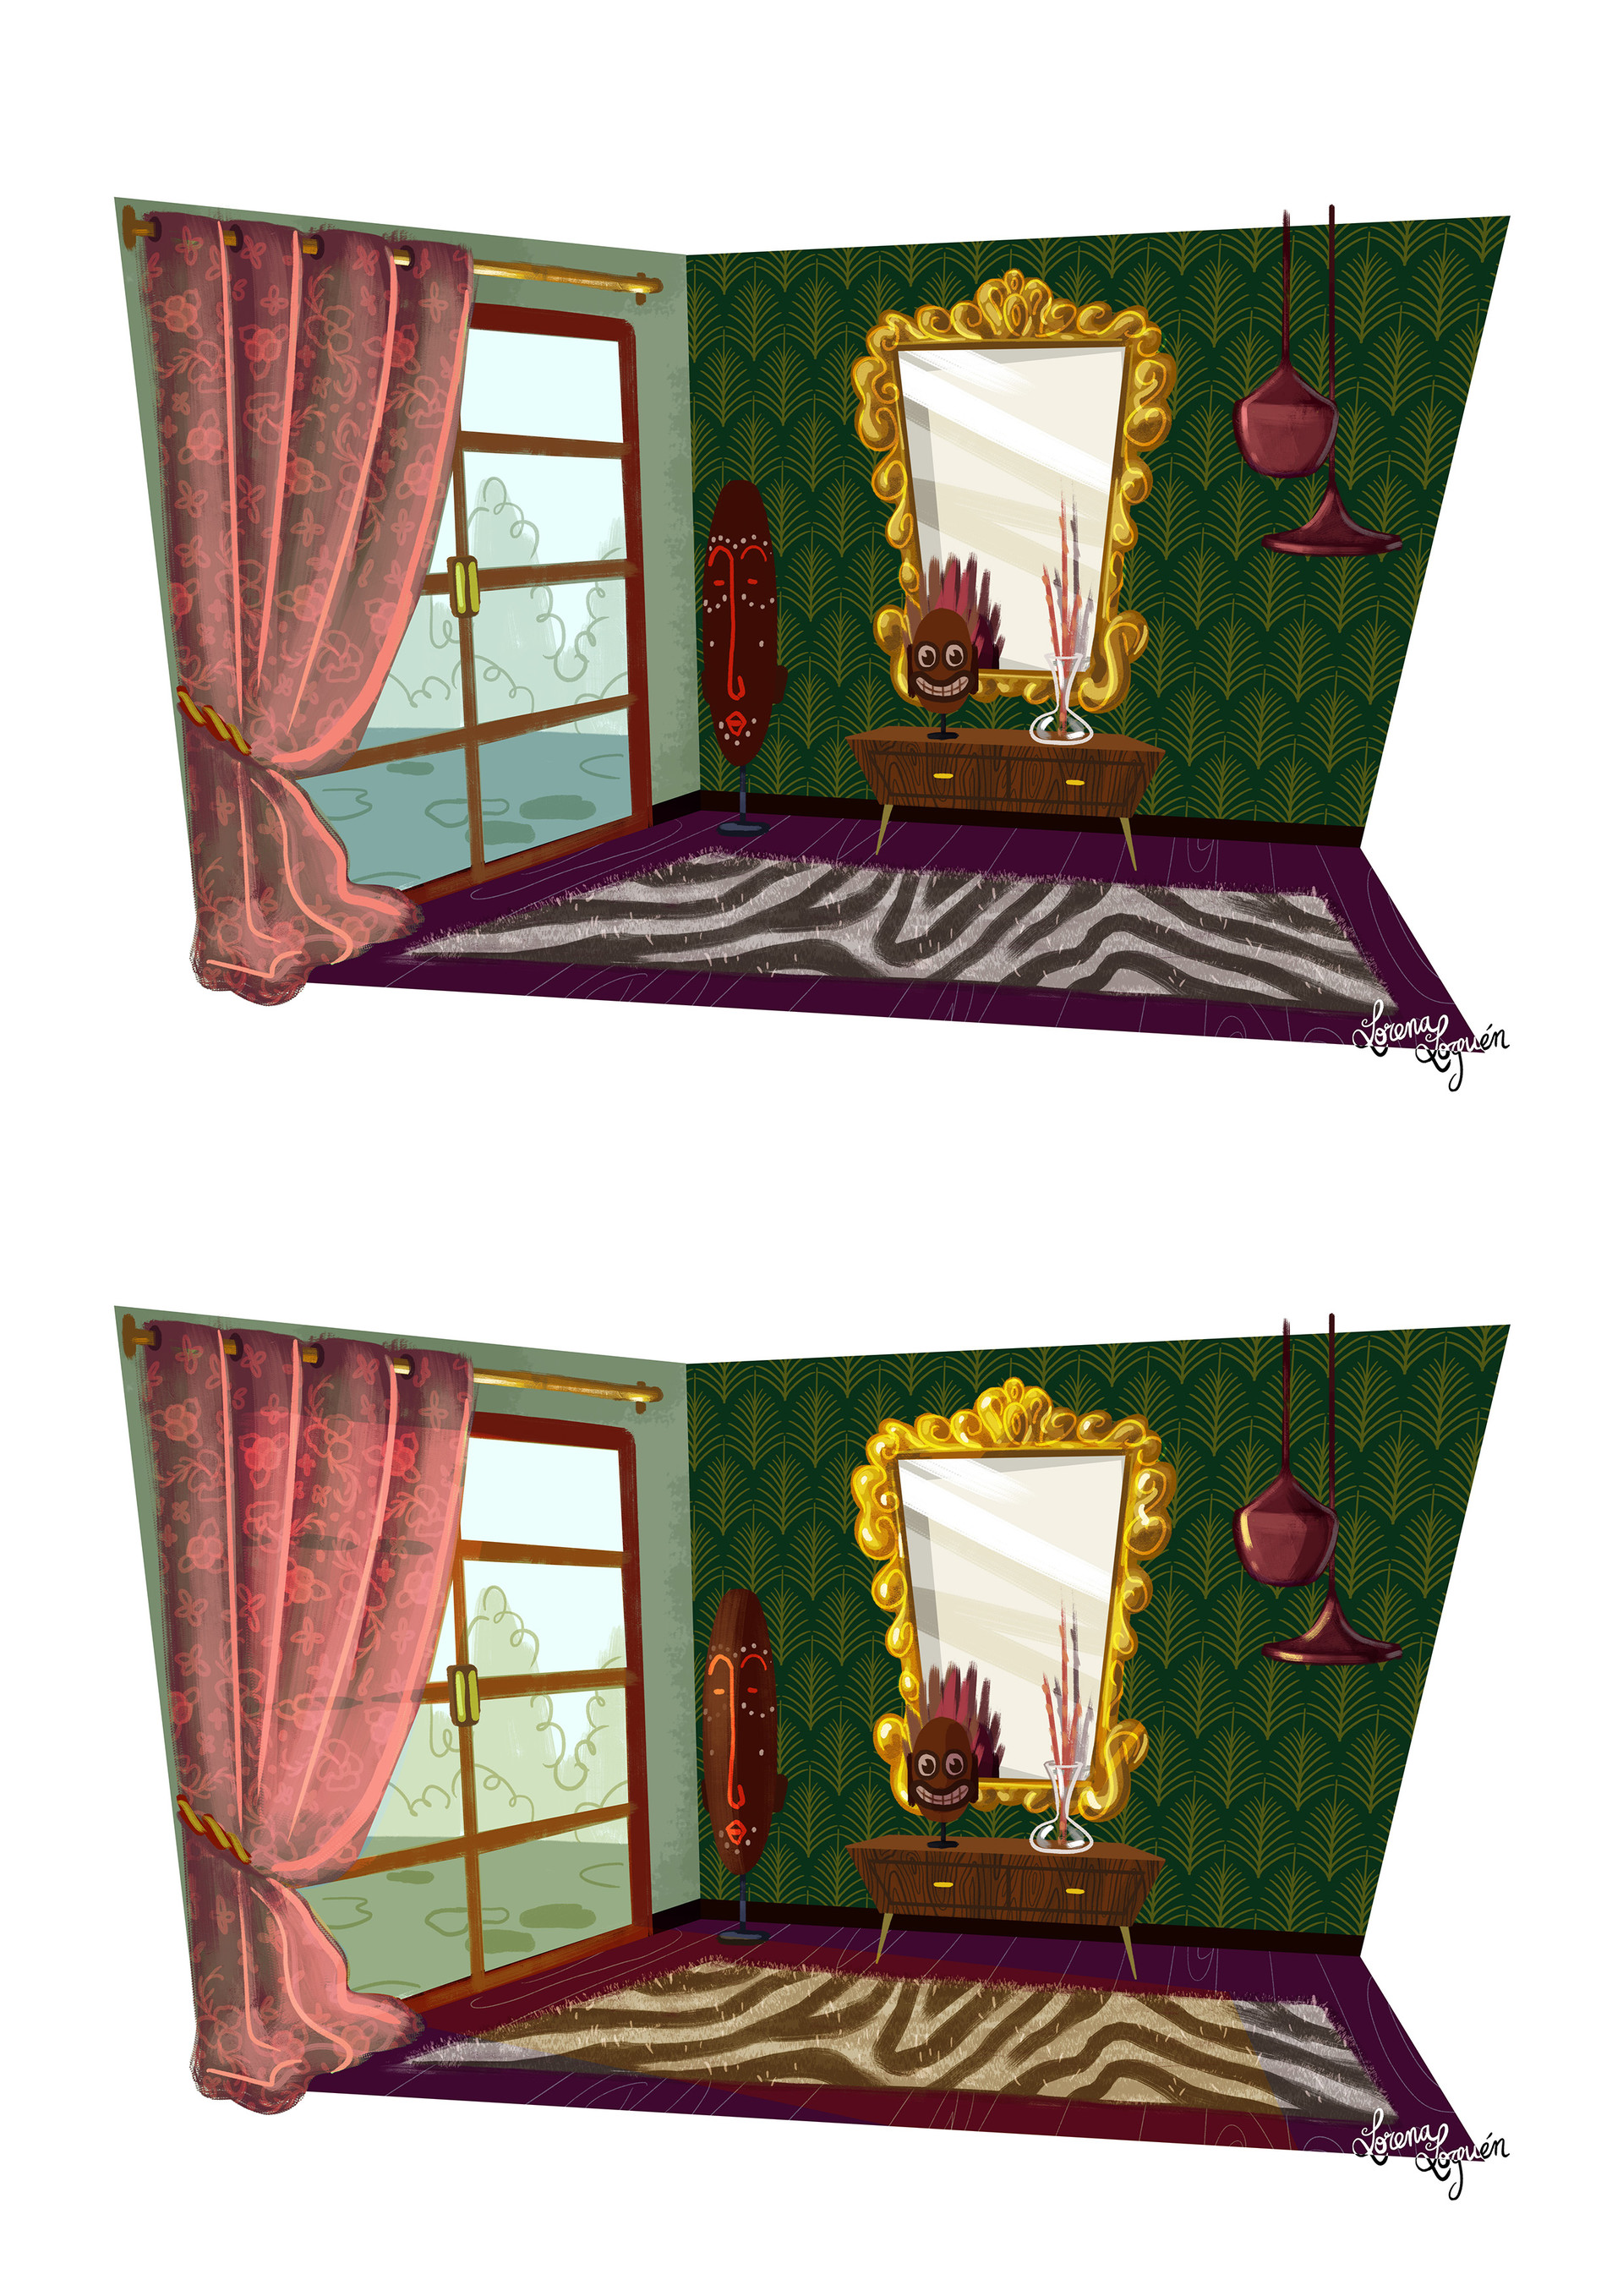 Color values. I changed the color of the curtain to pink so that the main green was on the walls, especially the wallpaper, and for the curtains to merge with the rest of the decoration.